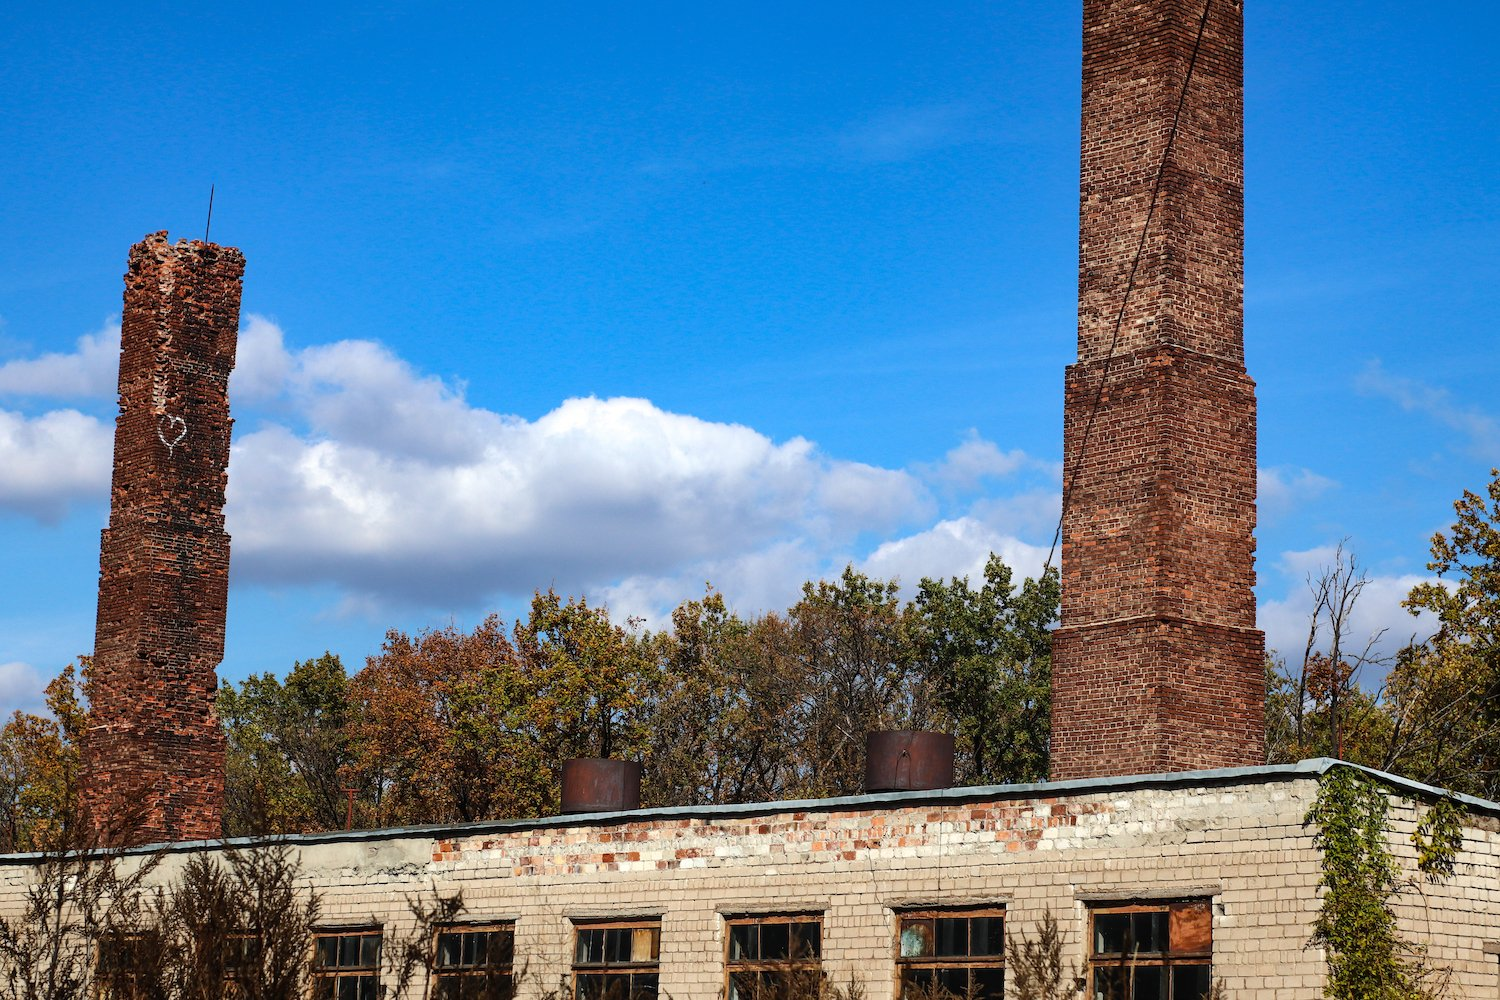 old brick building with two pipes example image 1